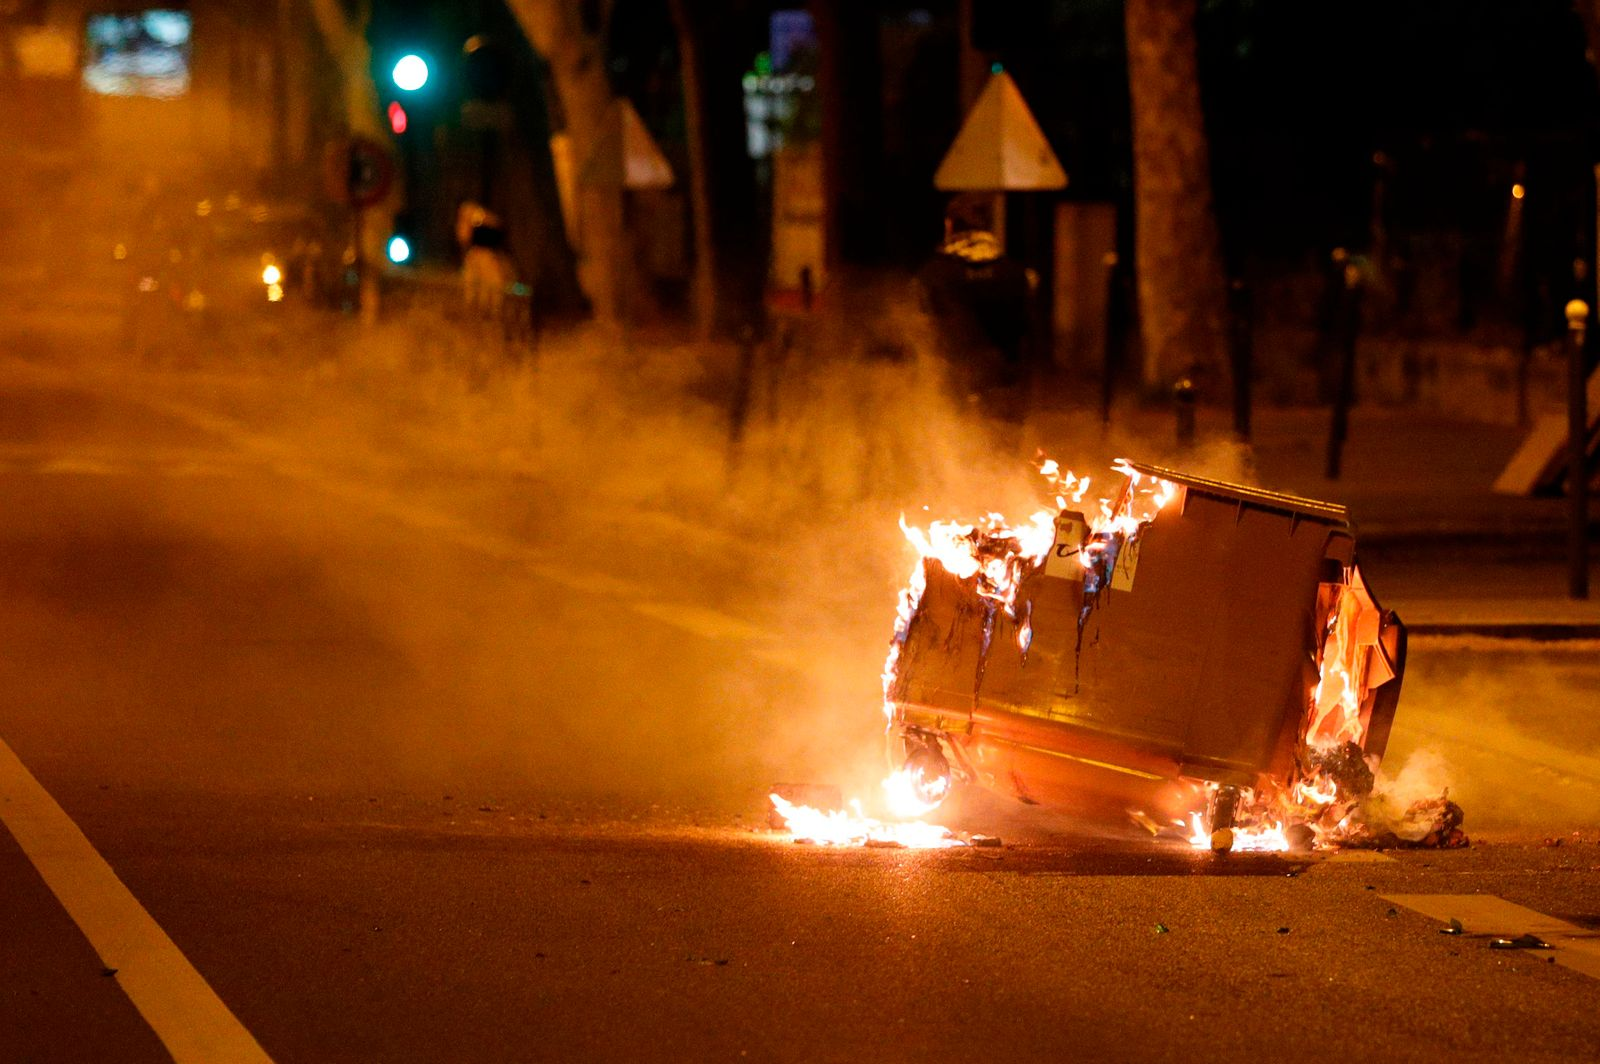 FRANCE-POLICE-ACCIDENT-UNREST